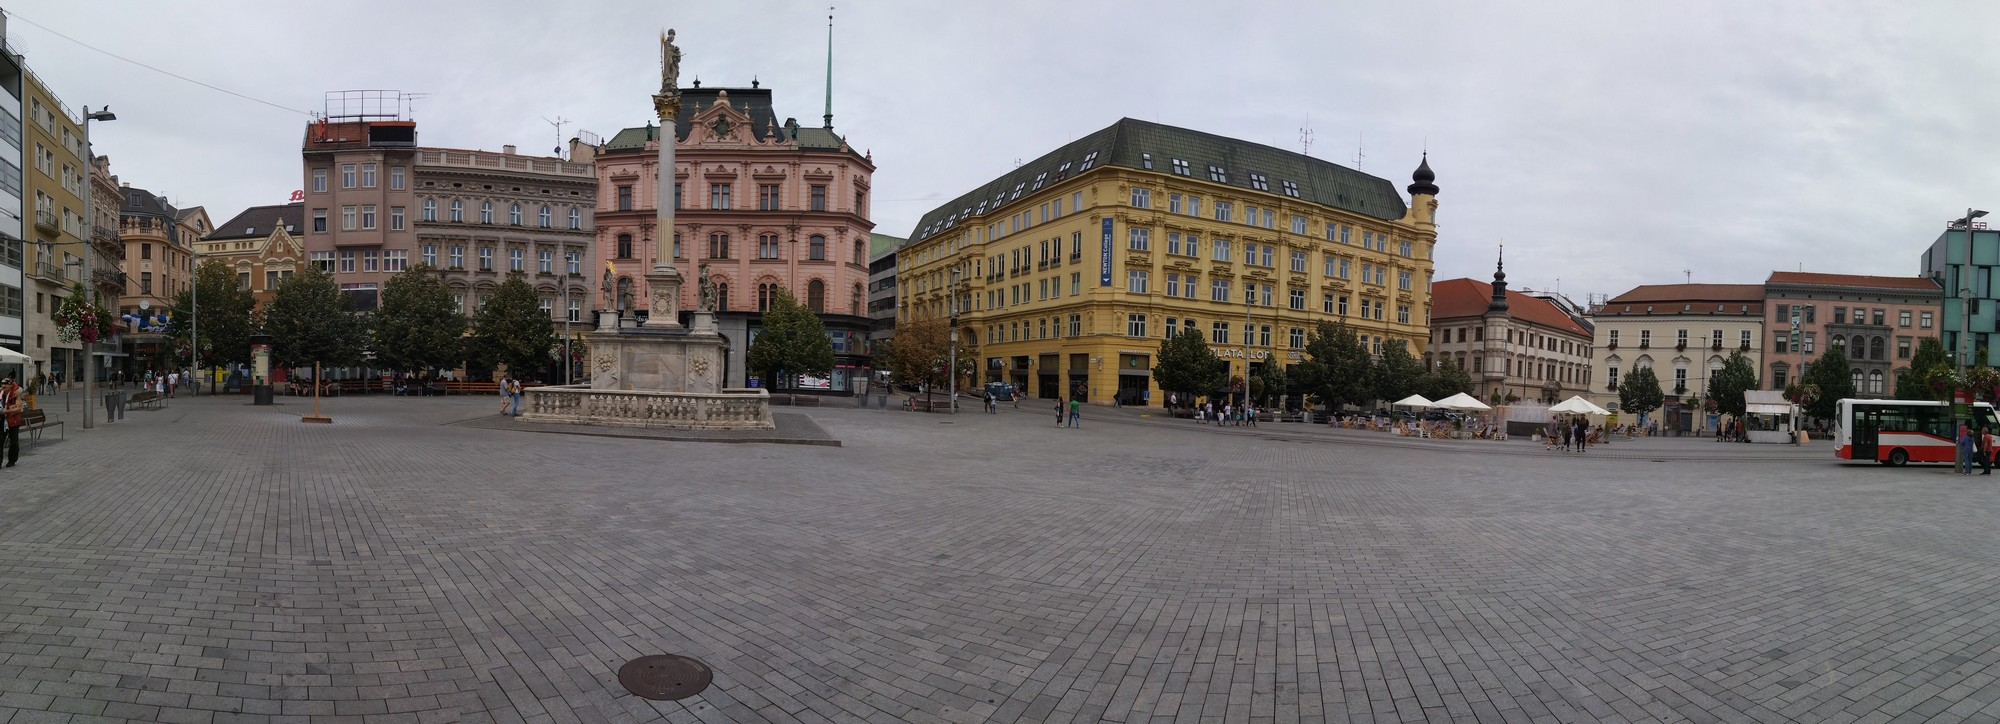 The Freedom square in Brno